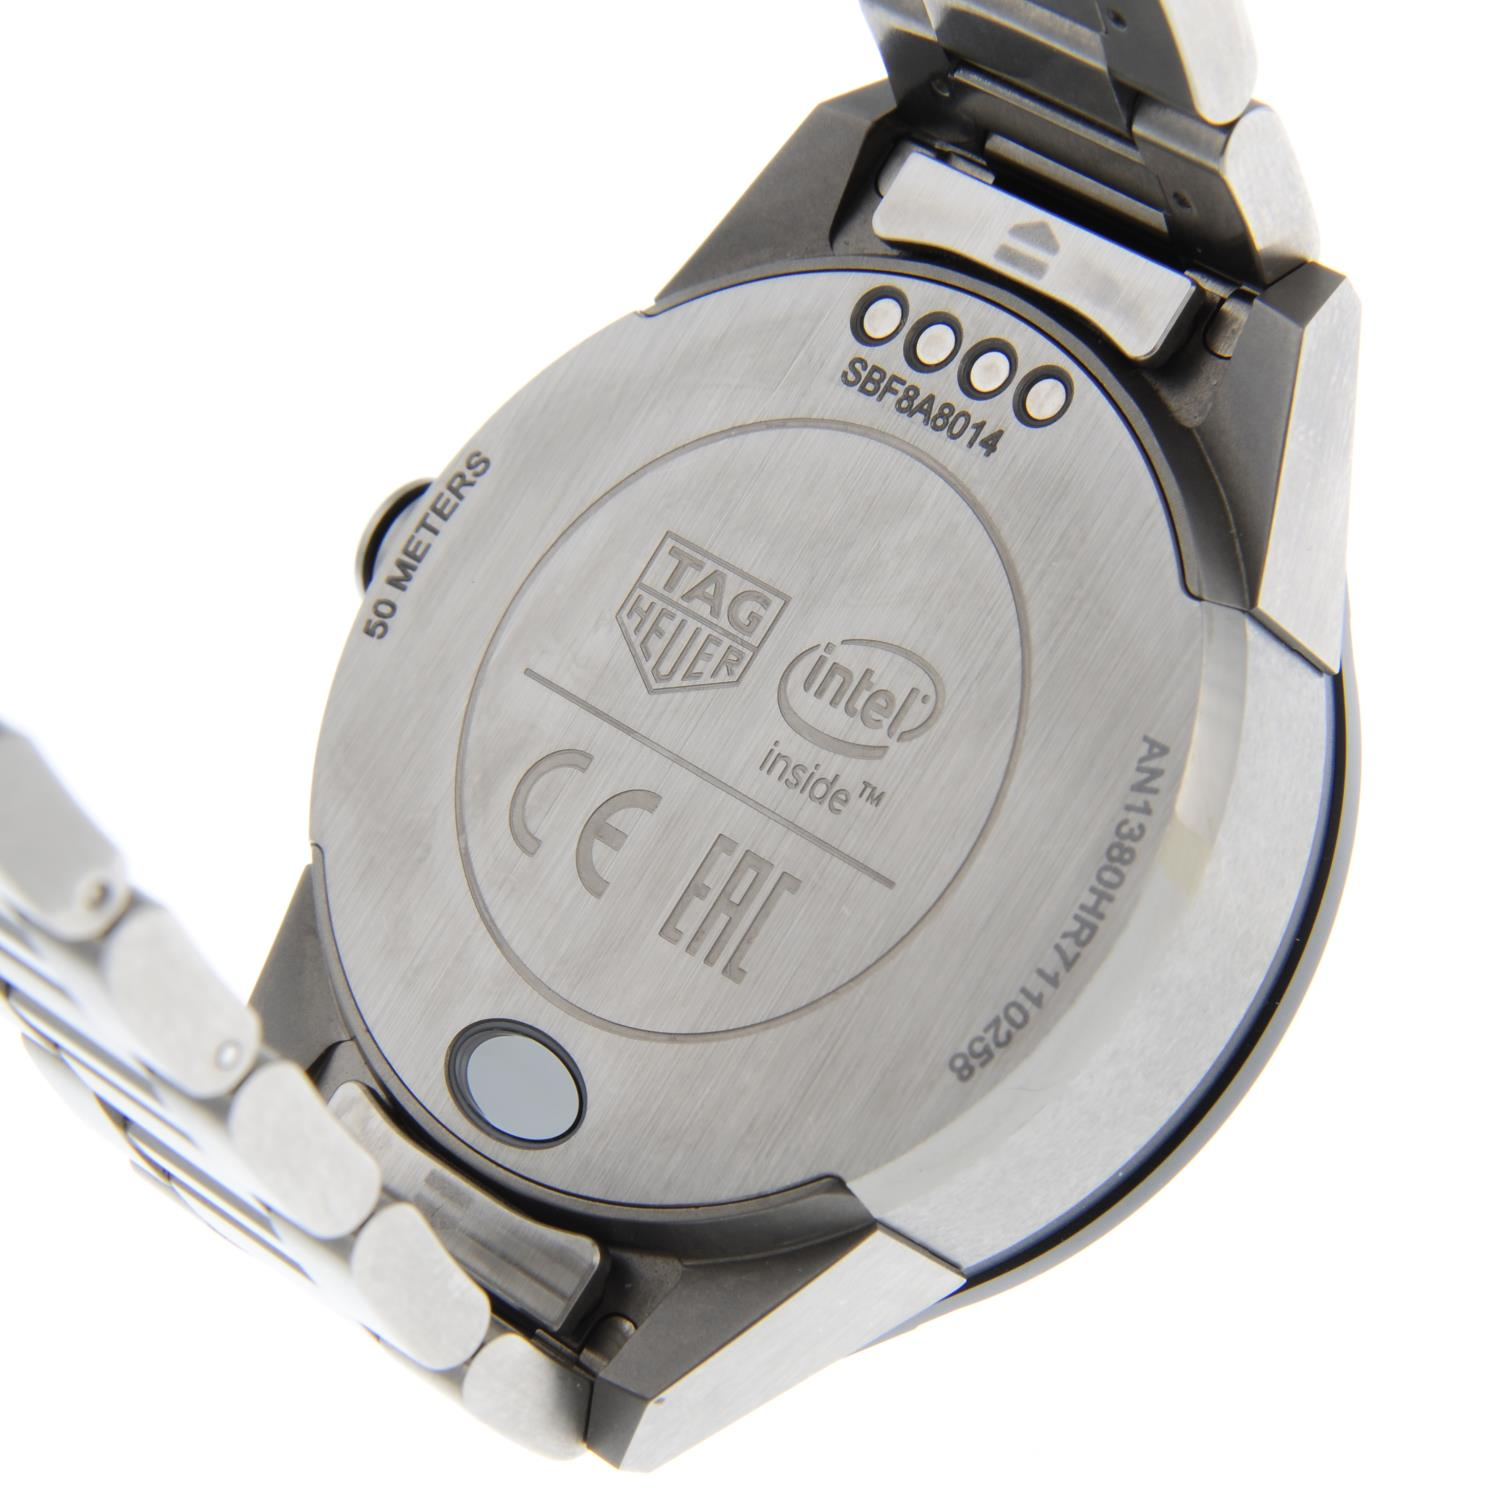 TAG HEUER - a Connected bracelet watch. - Image 6 of 6